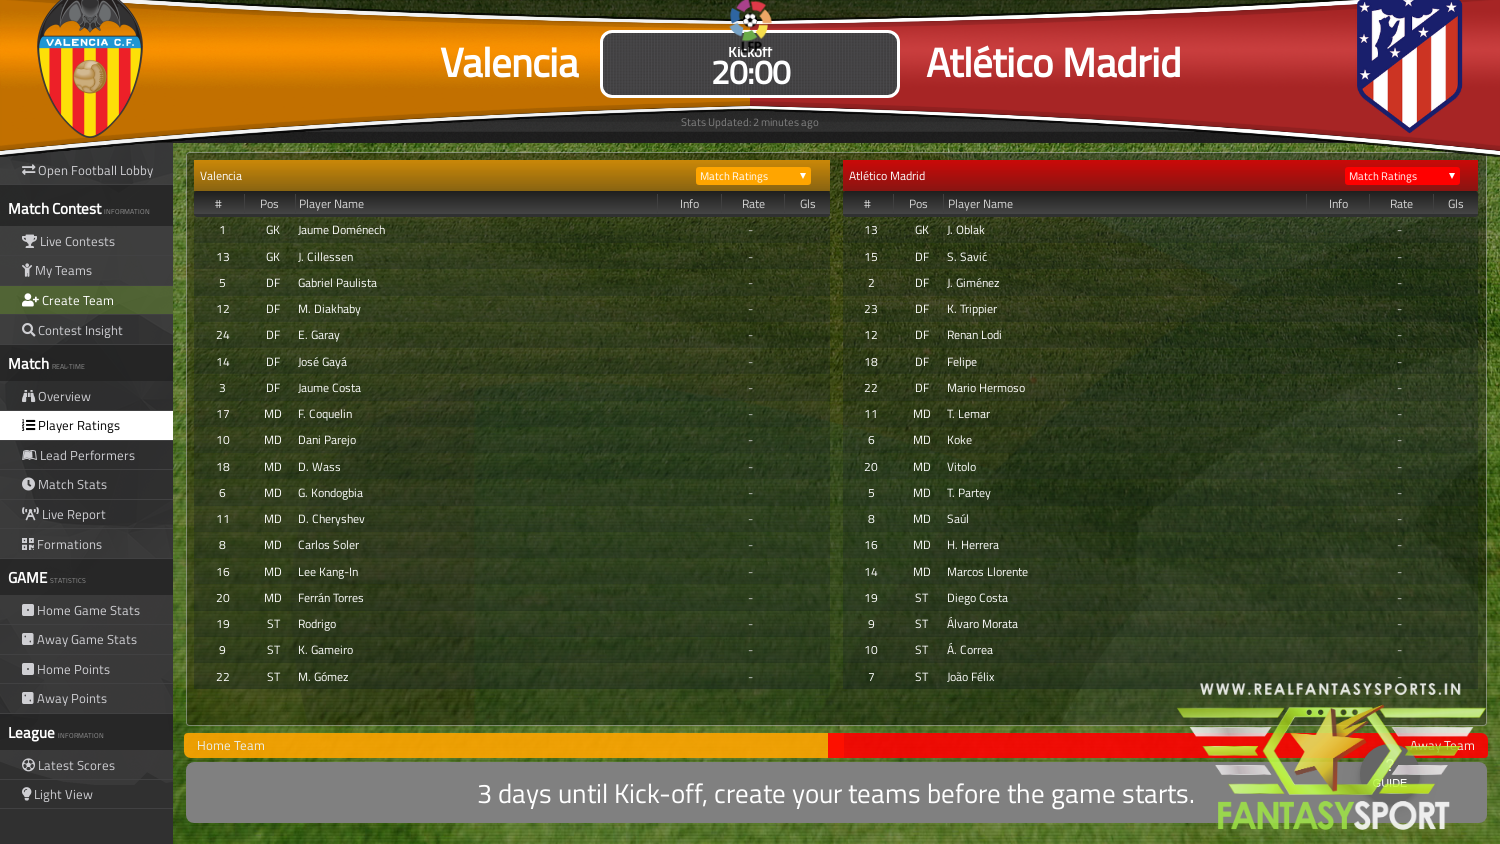 Fantasy Football Valencia Vs Atl Tico Madrid Friday 14th February 2020